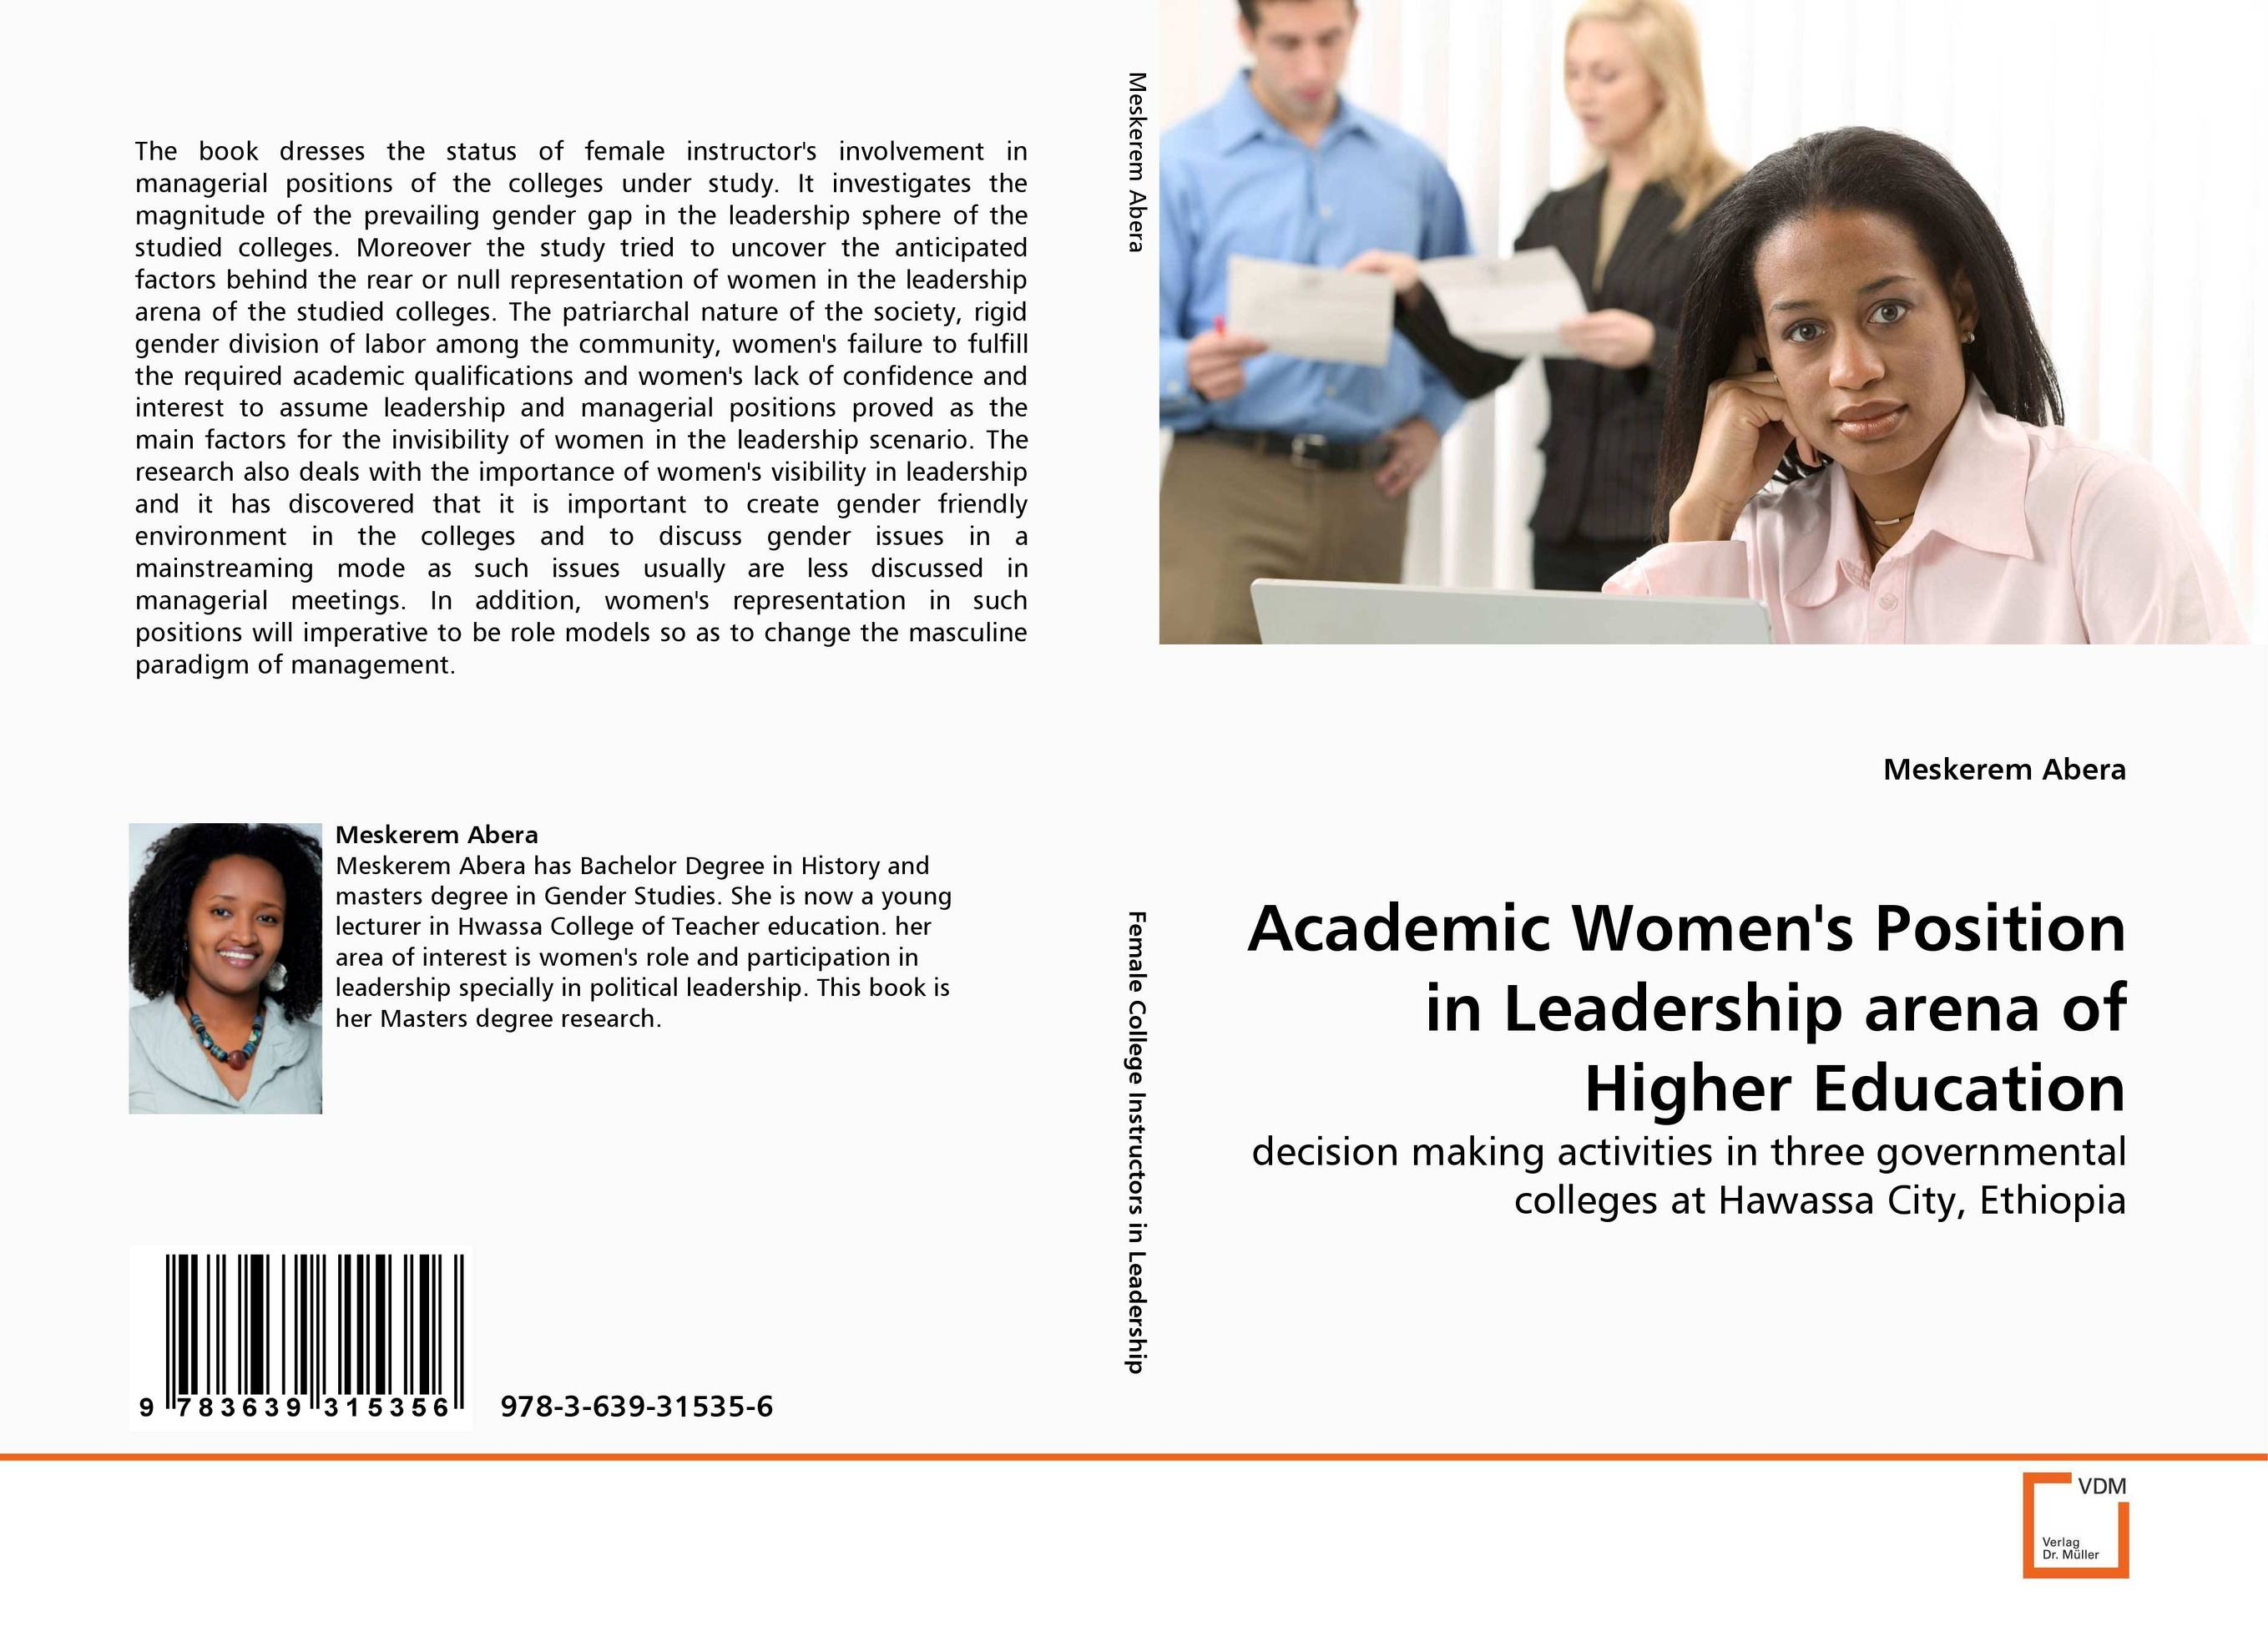 Academic Women''s Position in Leadership arena of Higher Education